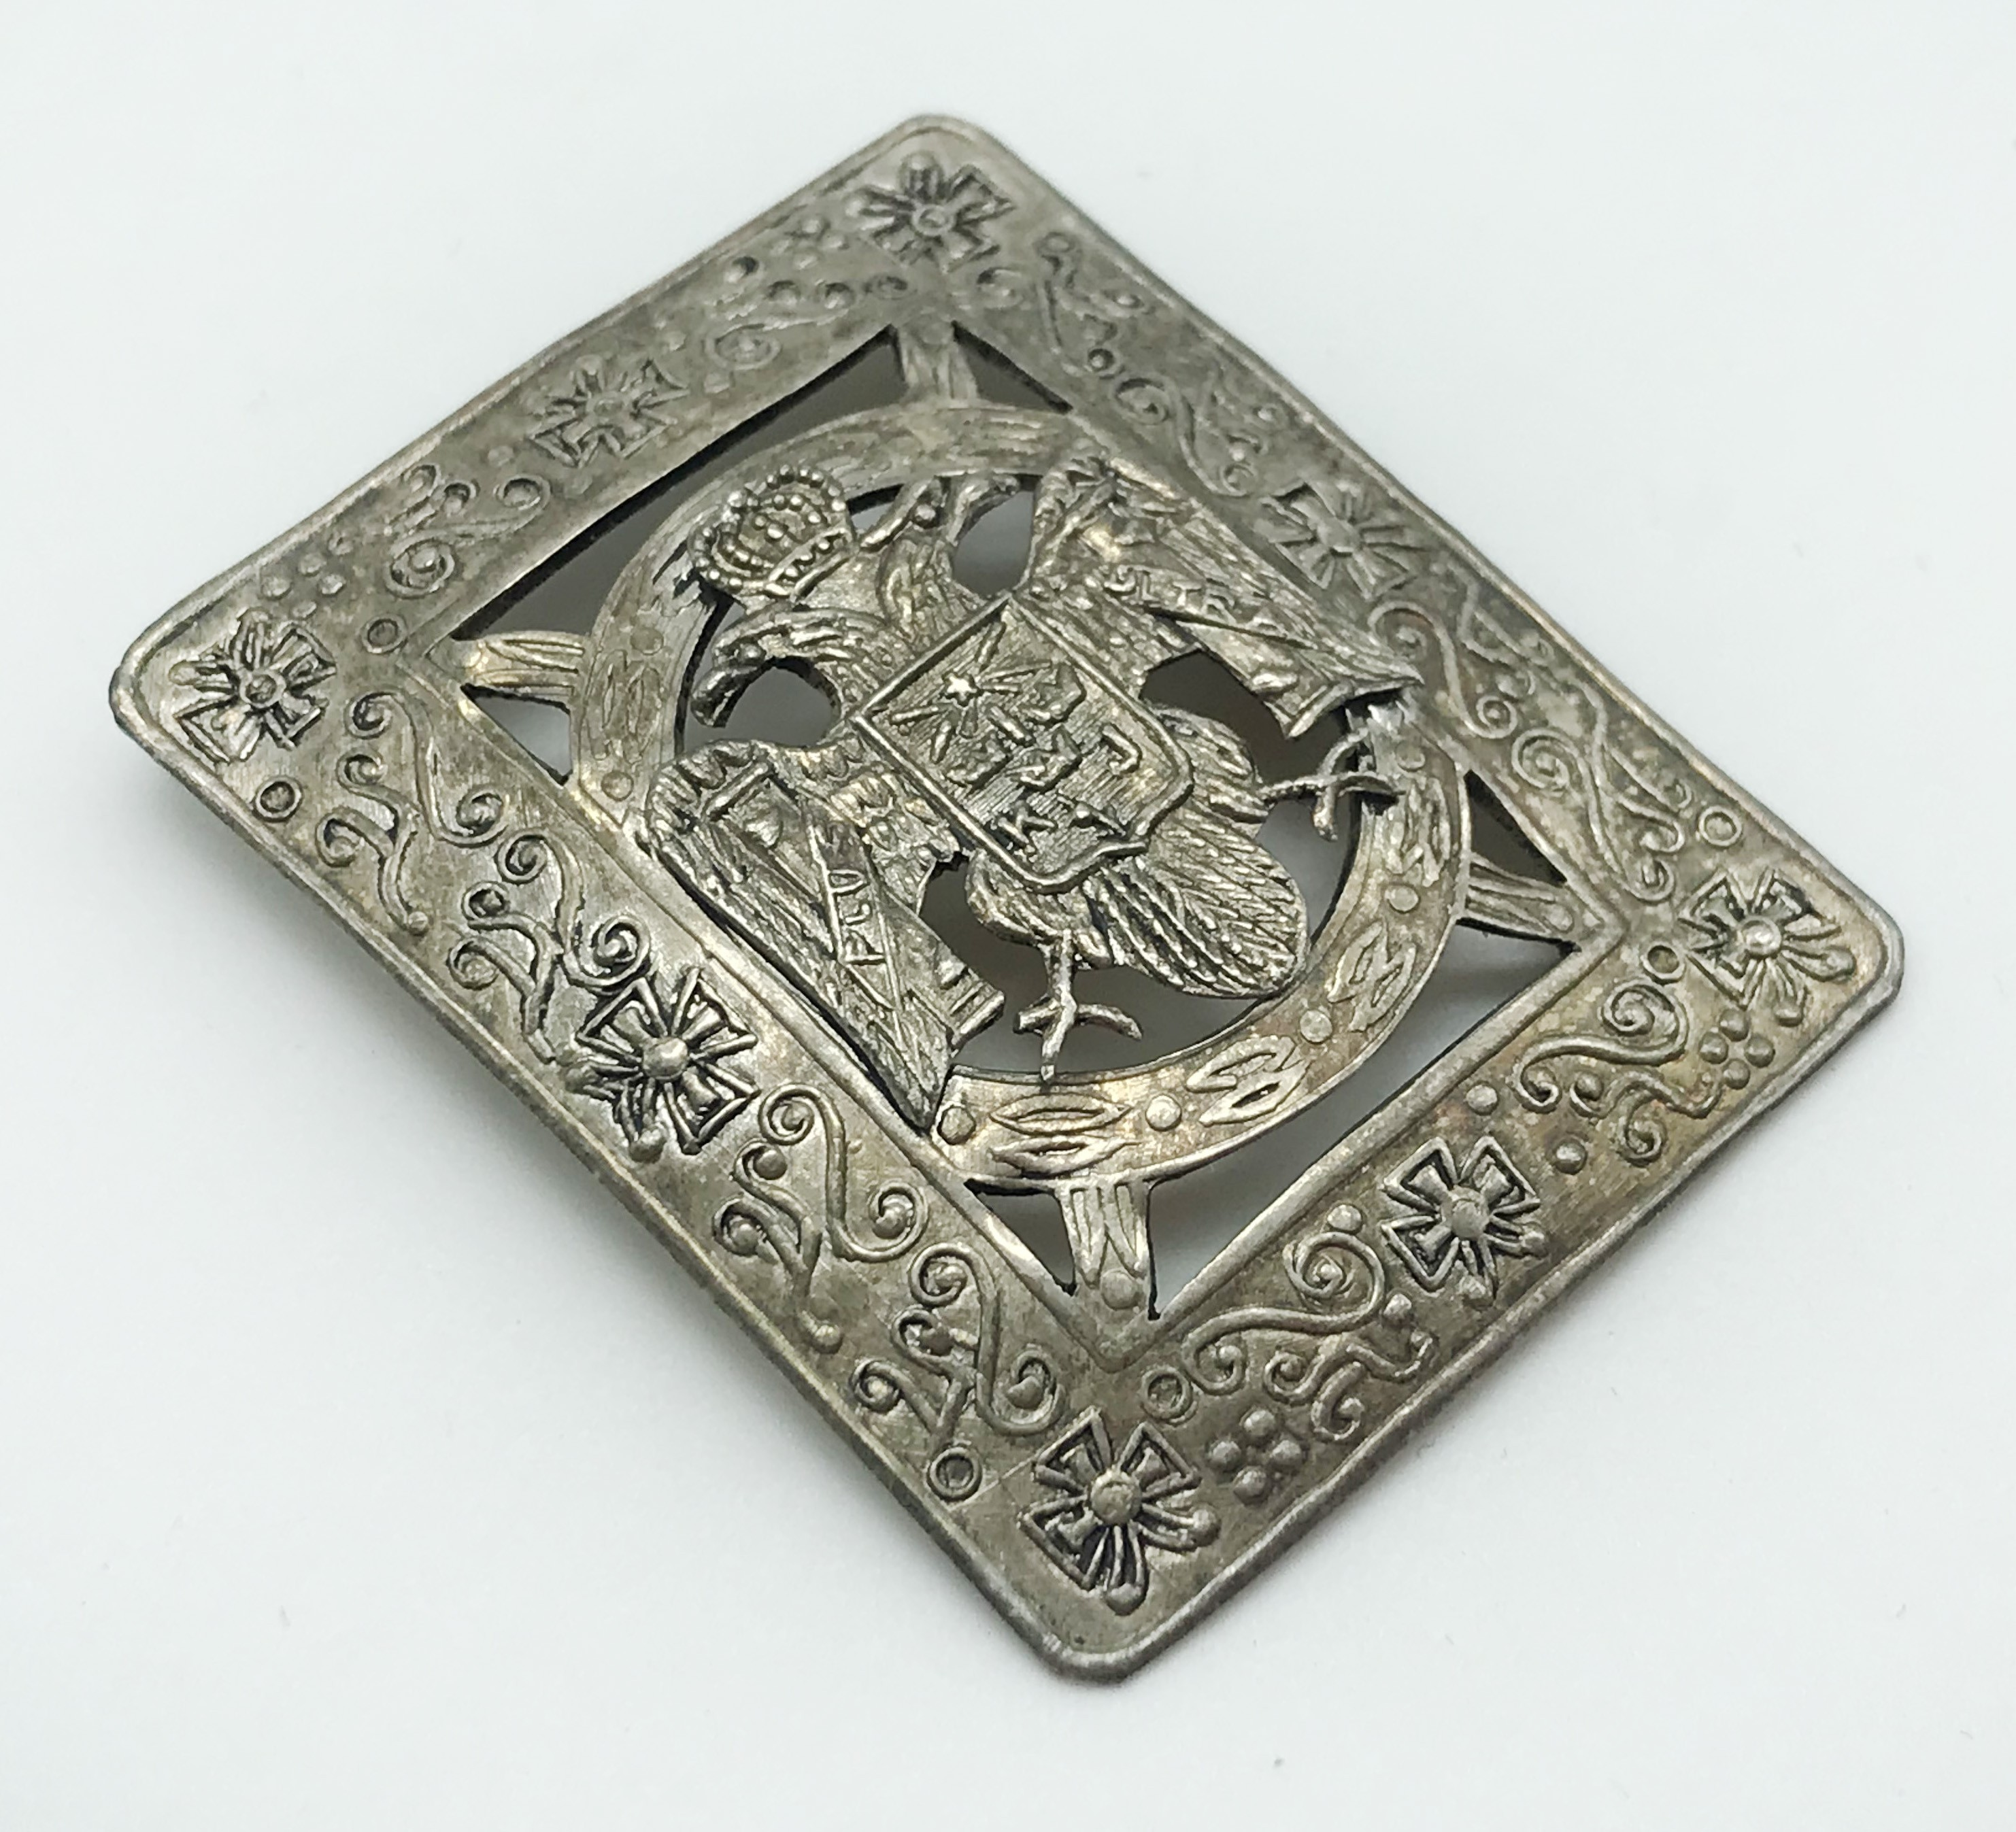 Lot 24 - SQUARE SHAPED DOUBLE HEADED EAGLE SILVER BROOCH